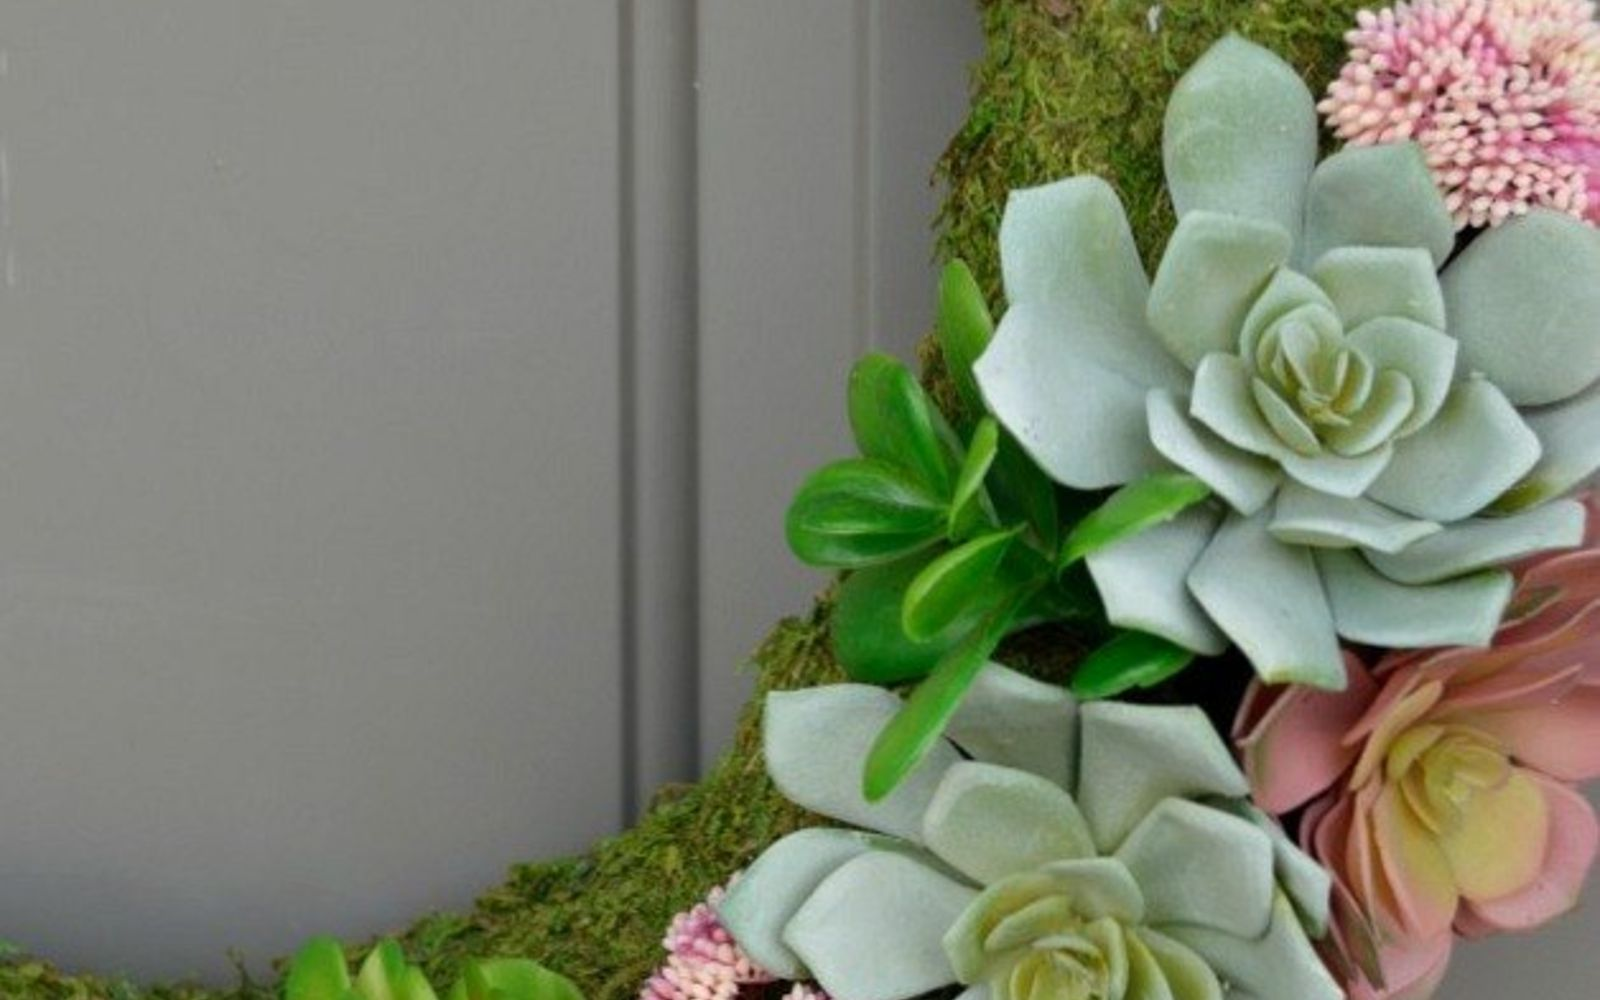 s 31 gorgeous spring wreaths that will make your neighbors smile, crafts, seasonal holiday decor, wreaths, Pair succulents and moss for a natural look